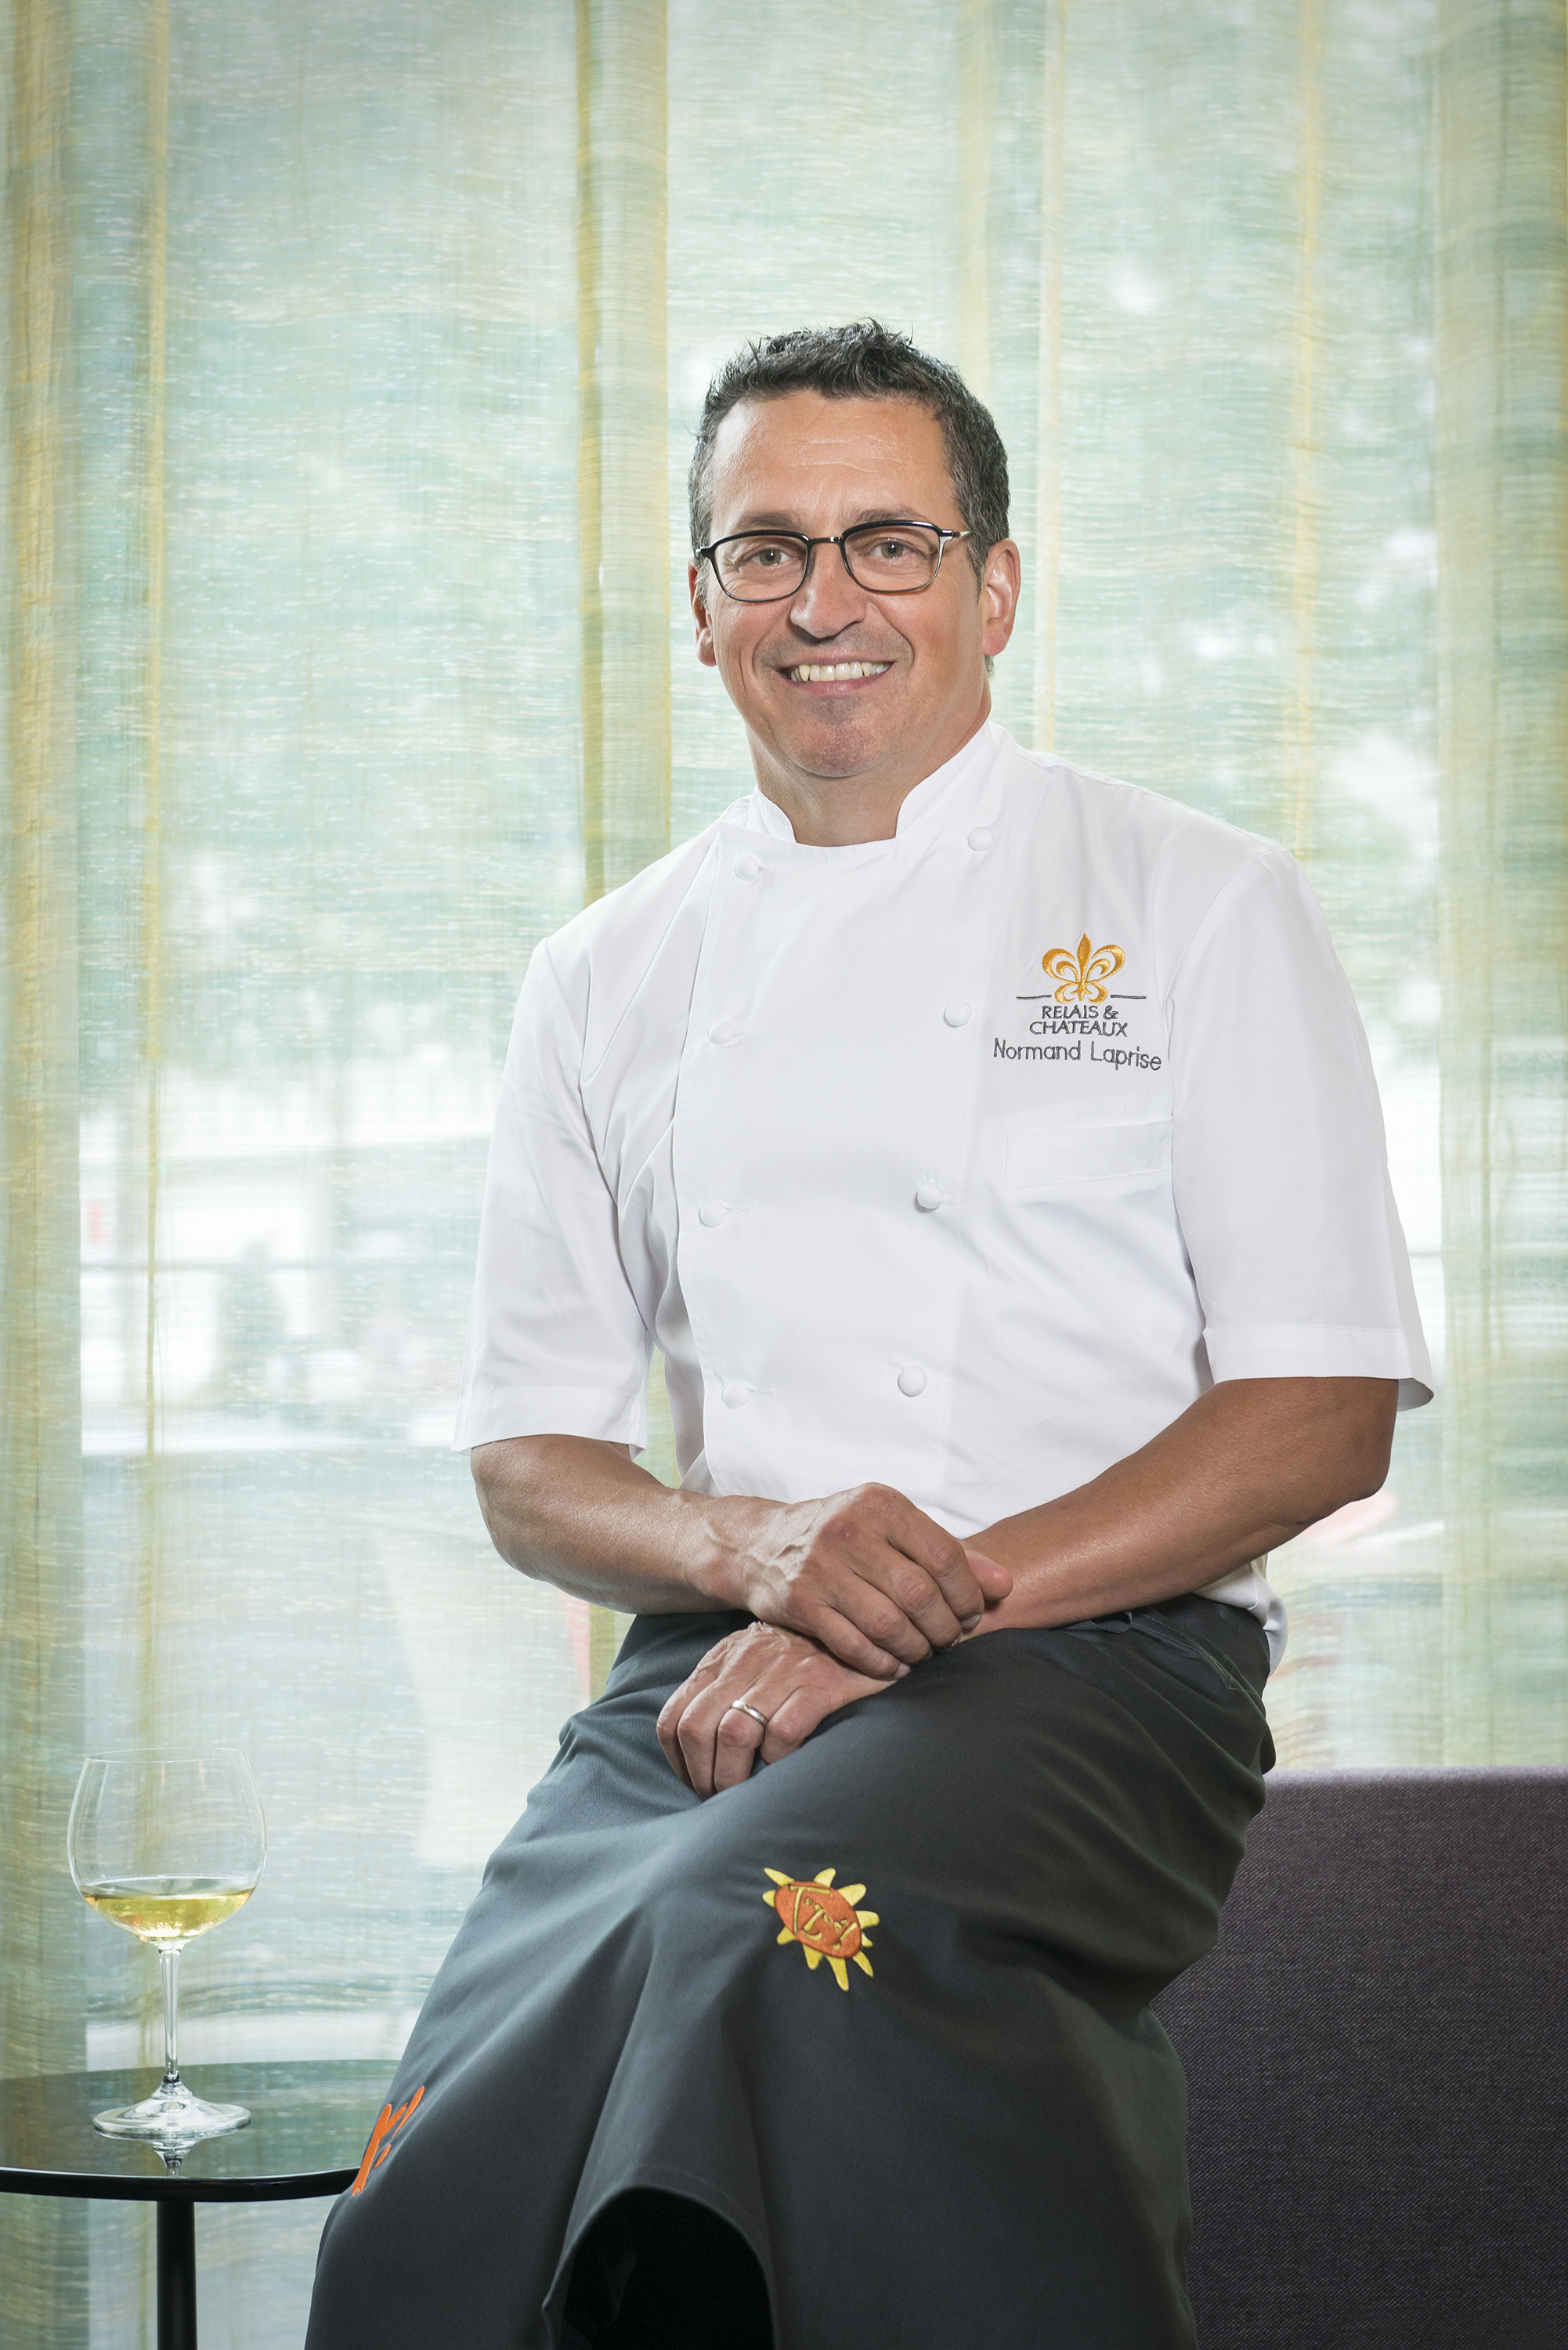 Culinary Workshop with Chef Normand Laprise